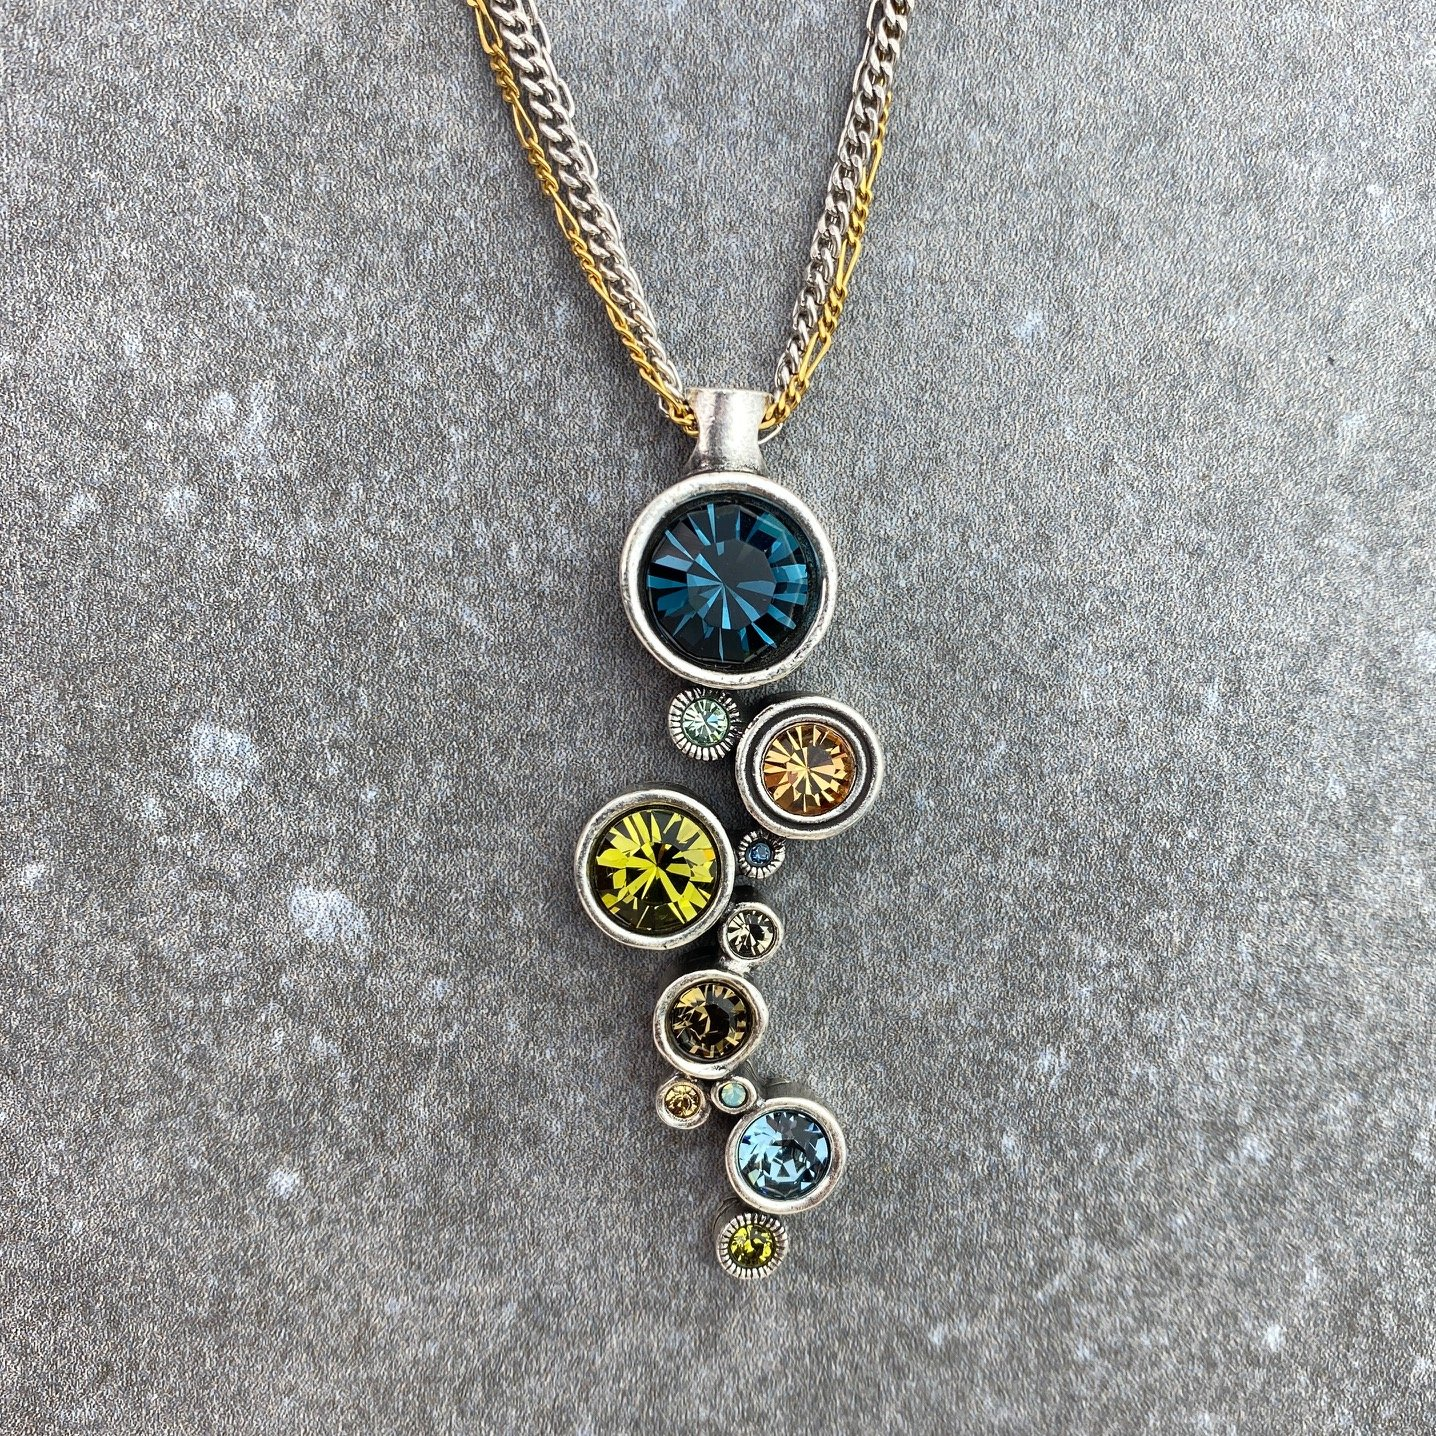 Applause Necklace